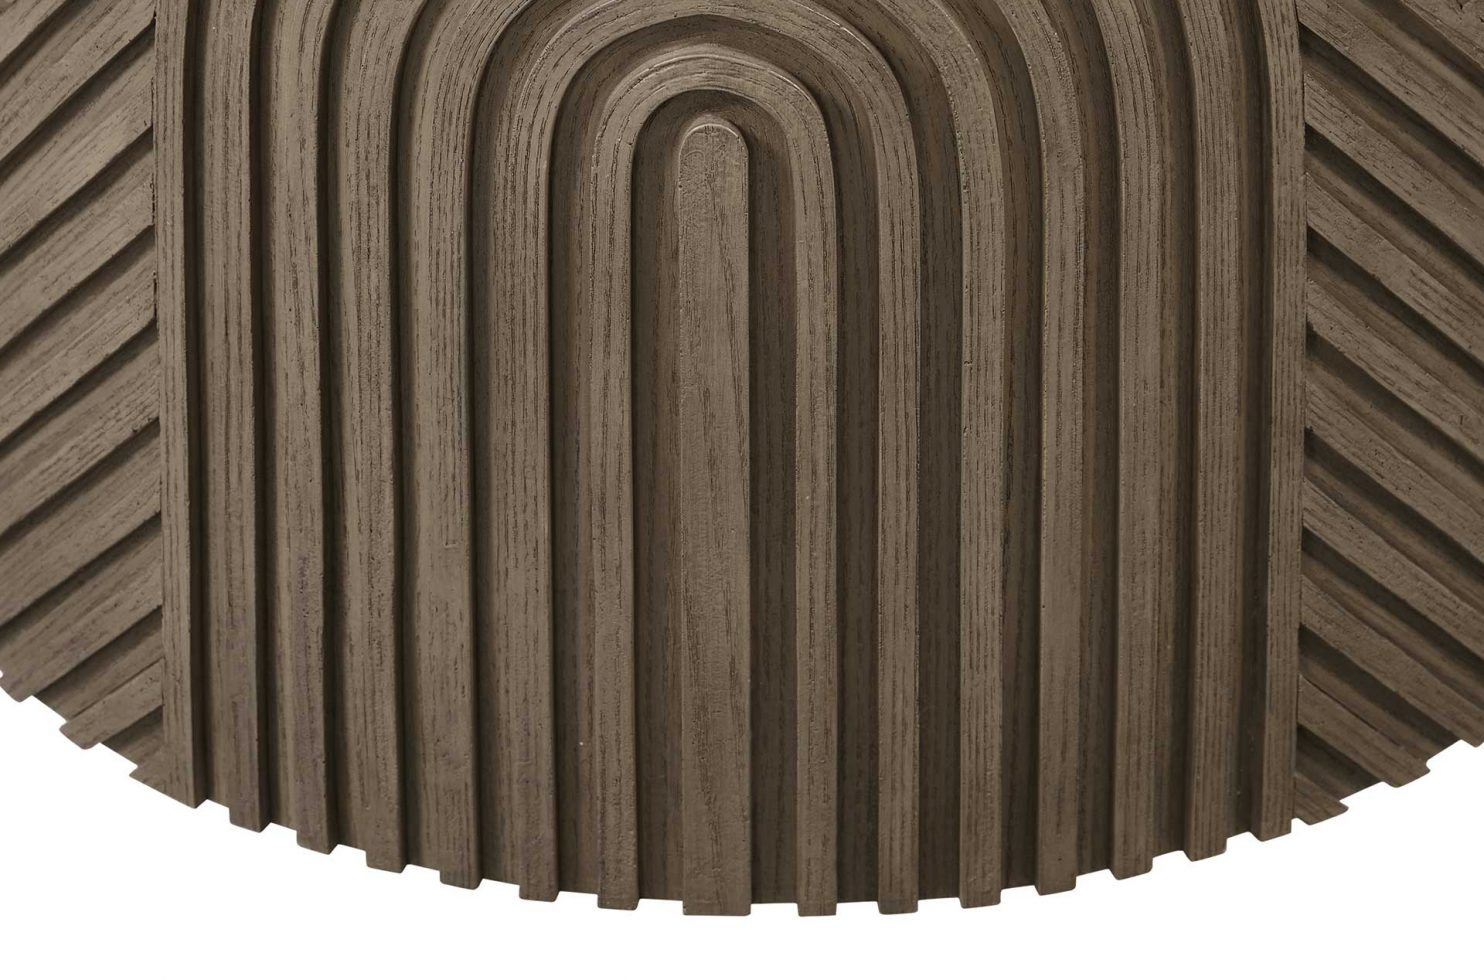 prov frp serenity energy textured round table S1568804146 dtl5 web